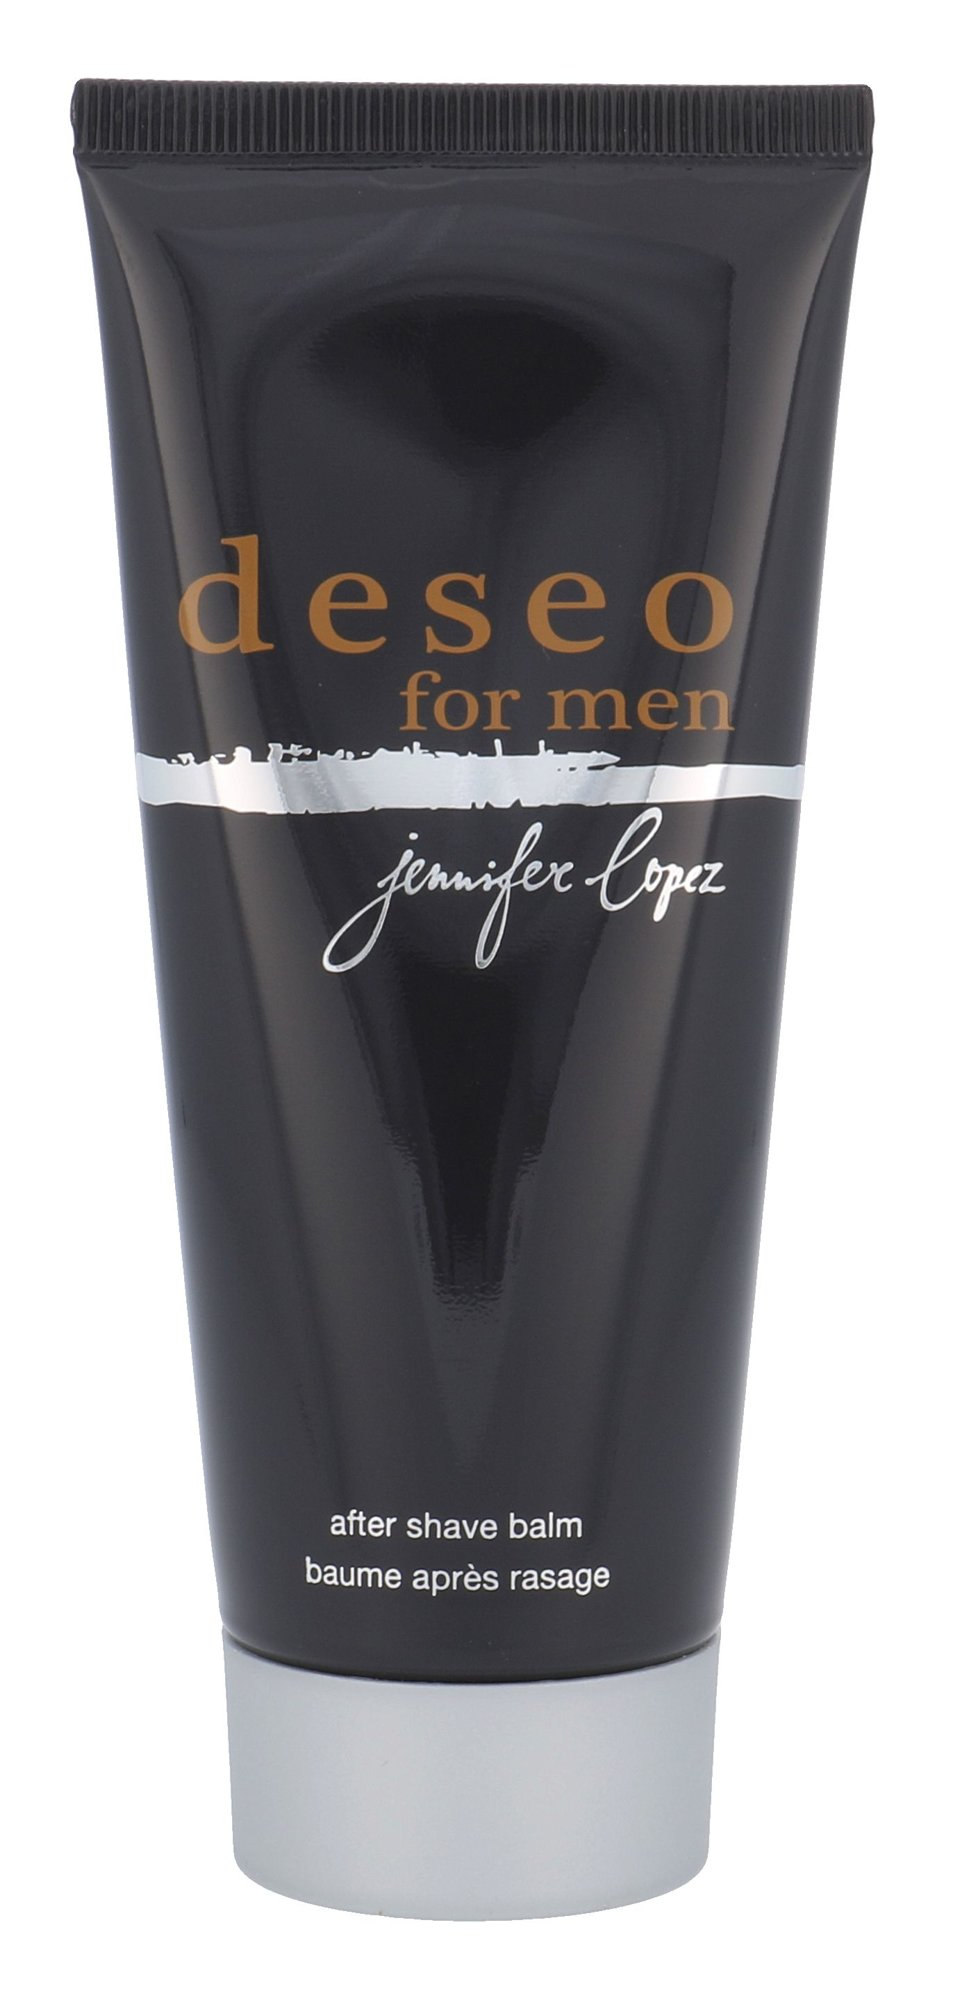 Jennifer Lopez Deseo After shave balm 100ml